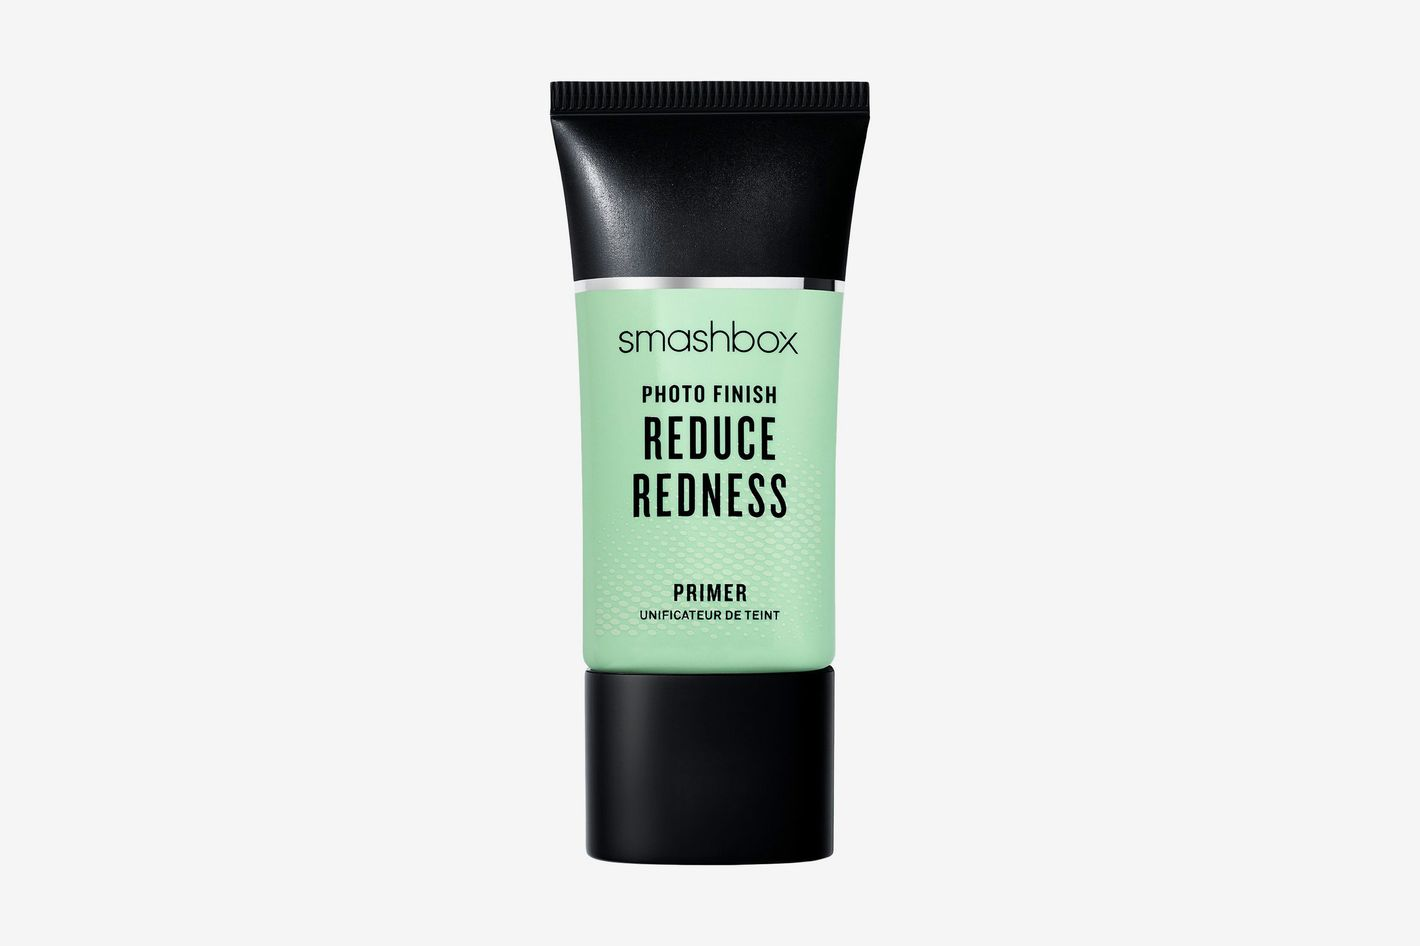 Smashbox Photo Finish Redness Reduce Primer